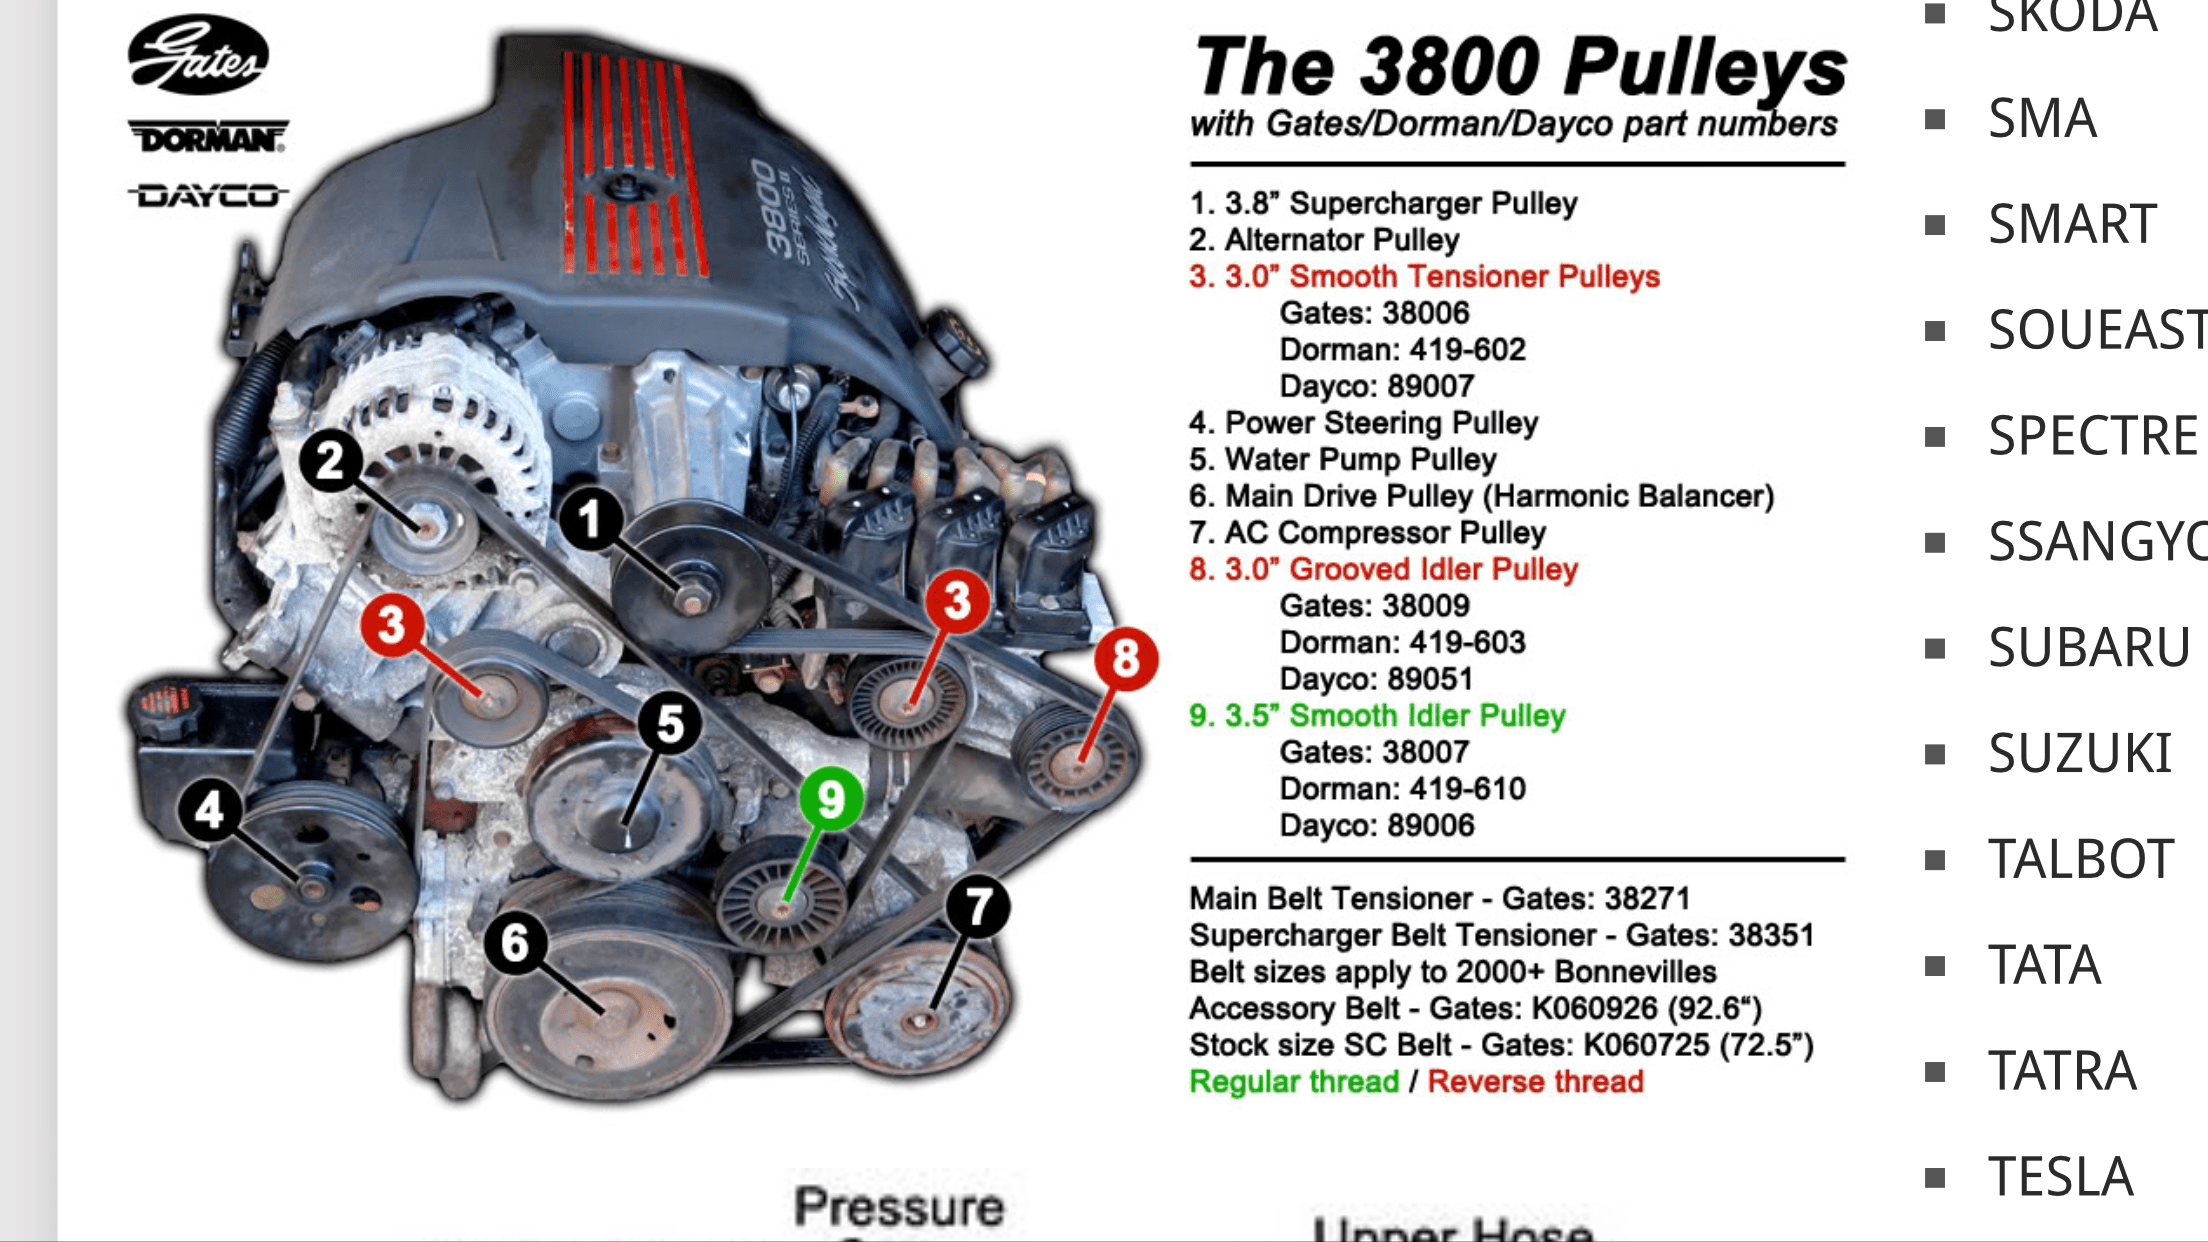 3800 series 2 engine diagram lenel access control system wiring changing water pump on buick autos post